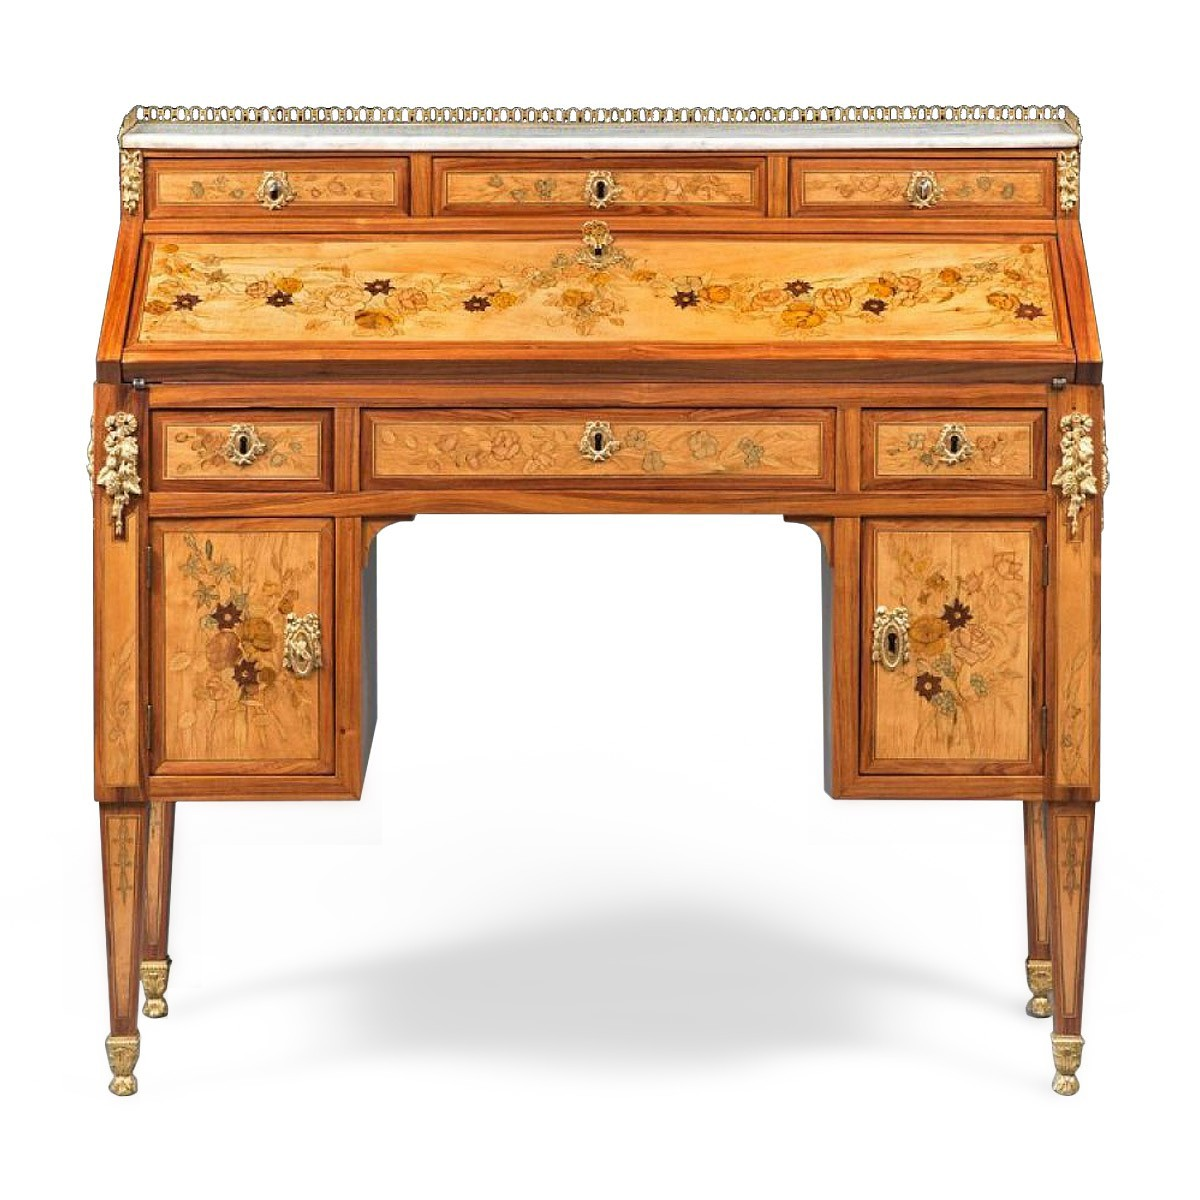 a louis xvi floral marquetry bureau en pente by topino. Black Bedroom Furniture Sets. Home Design Ideas